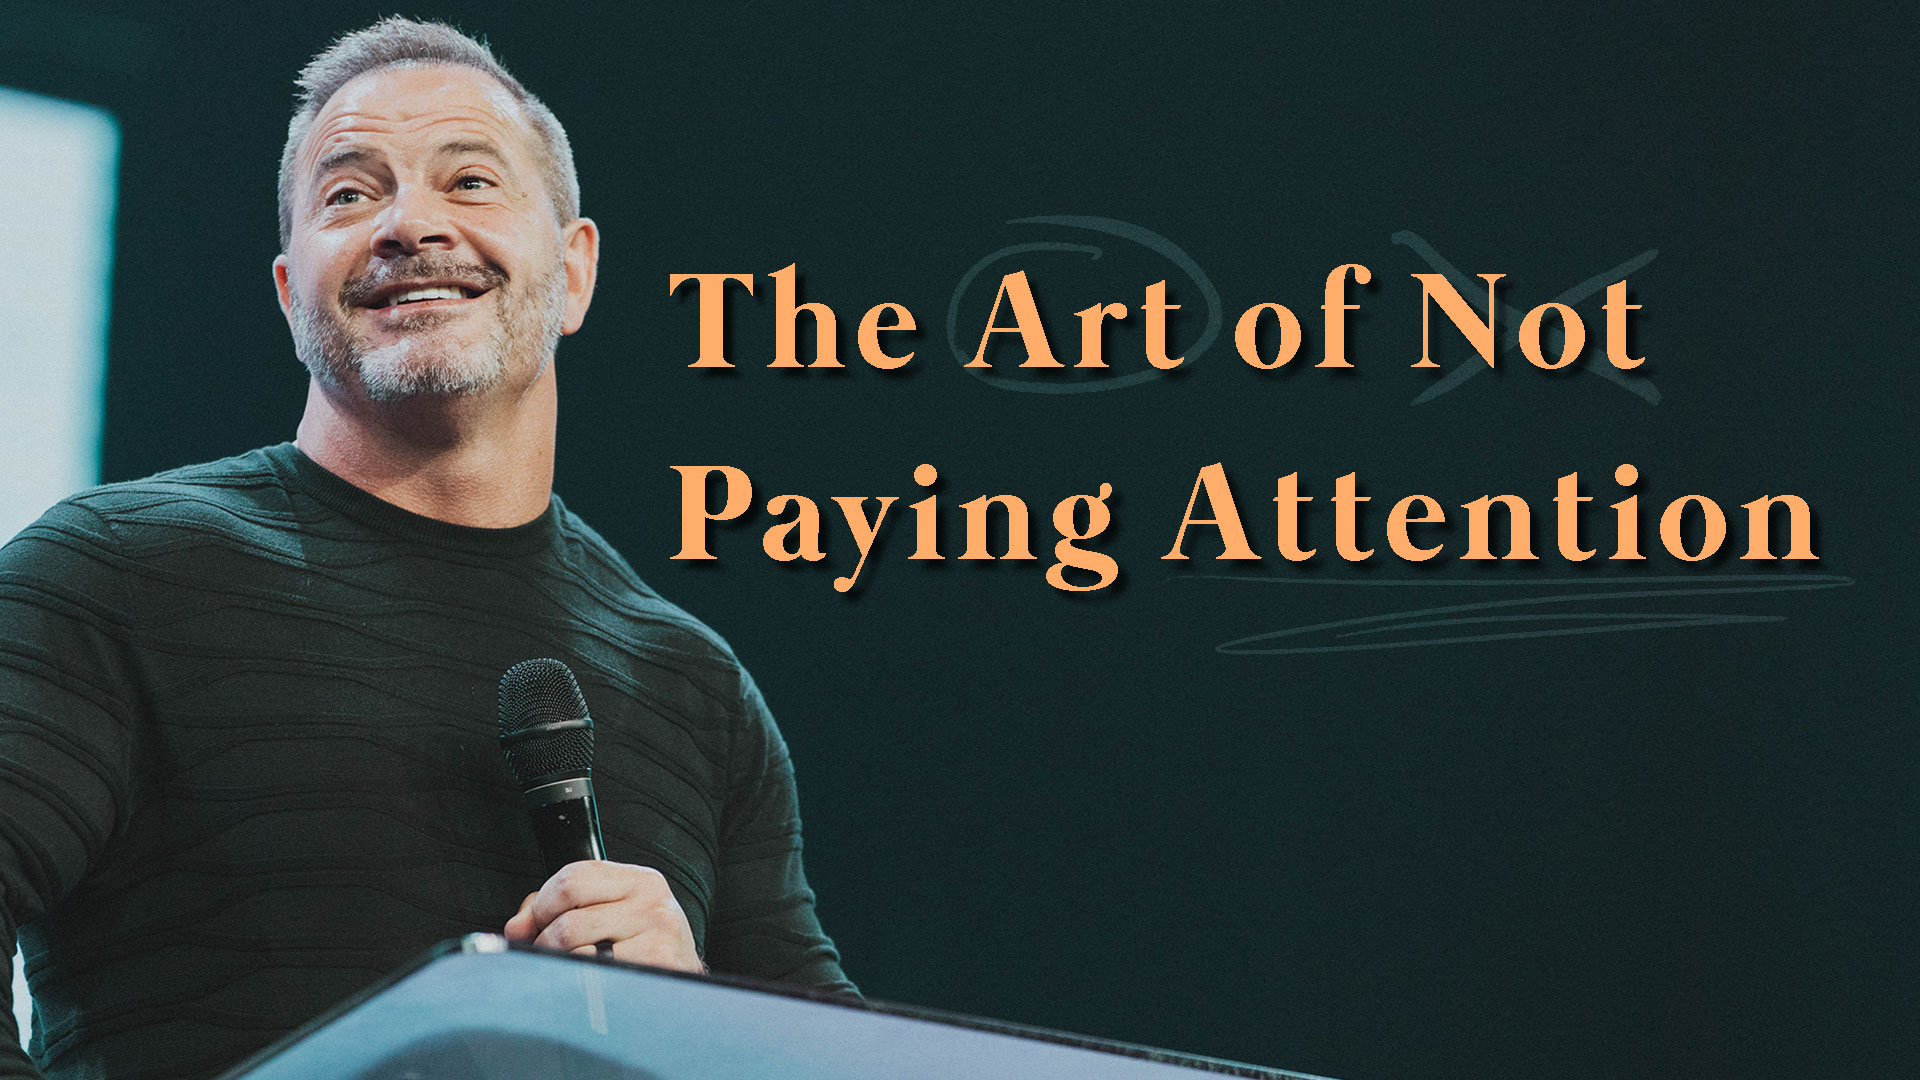 The Art of Not Paying Attention